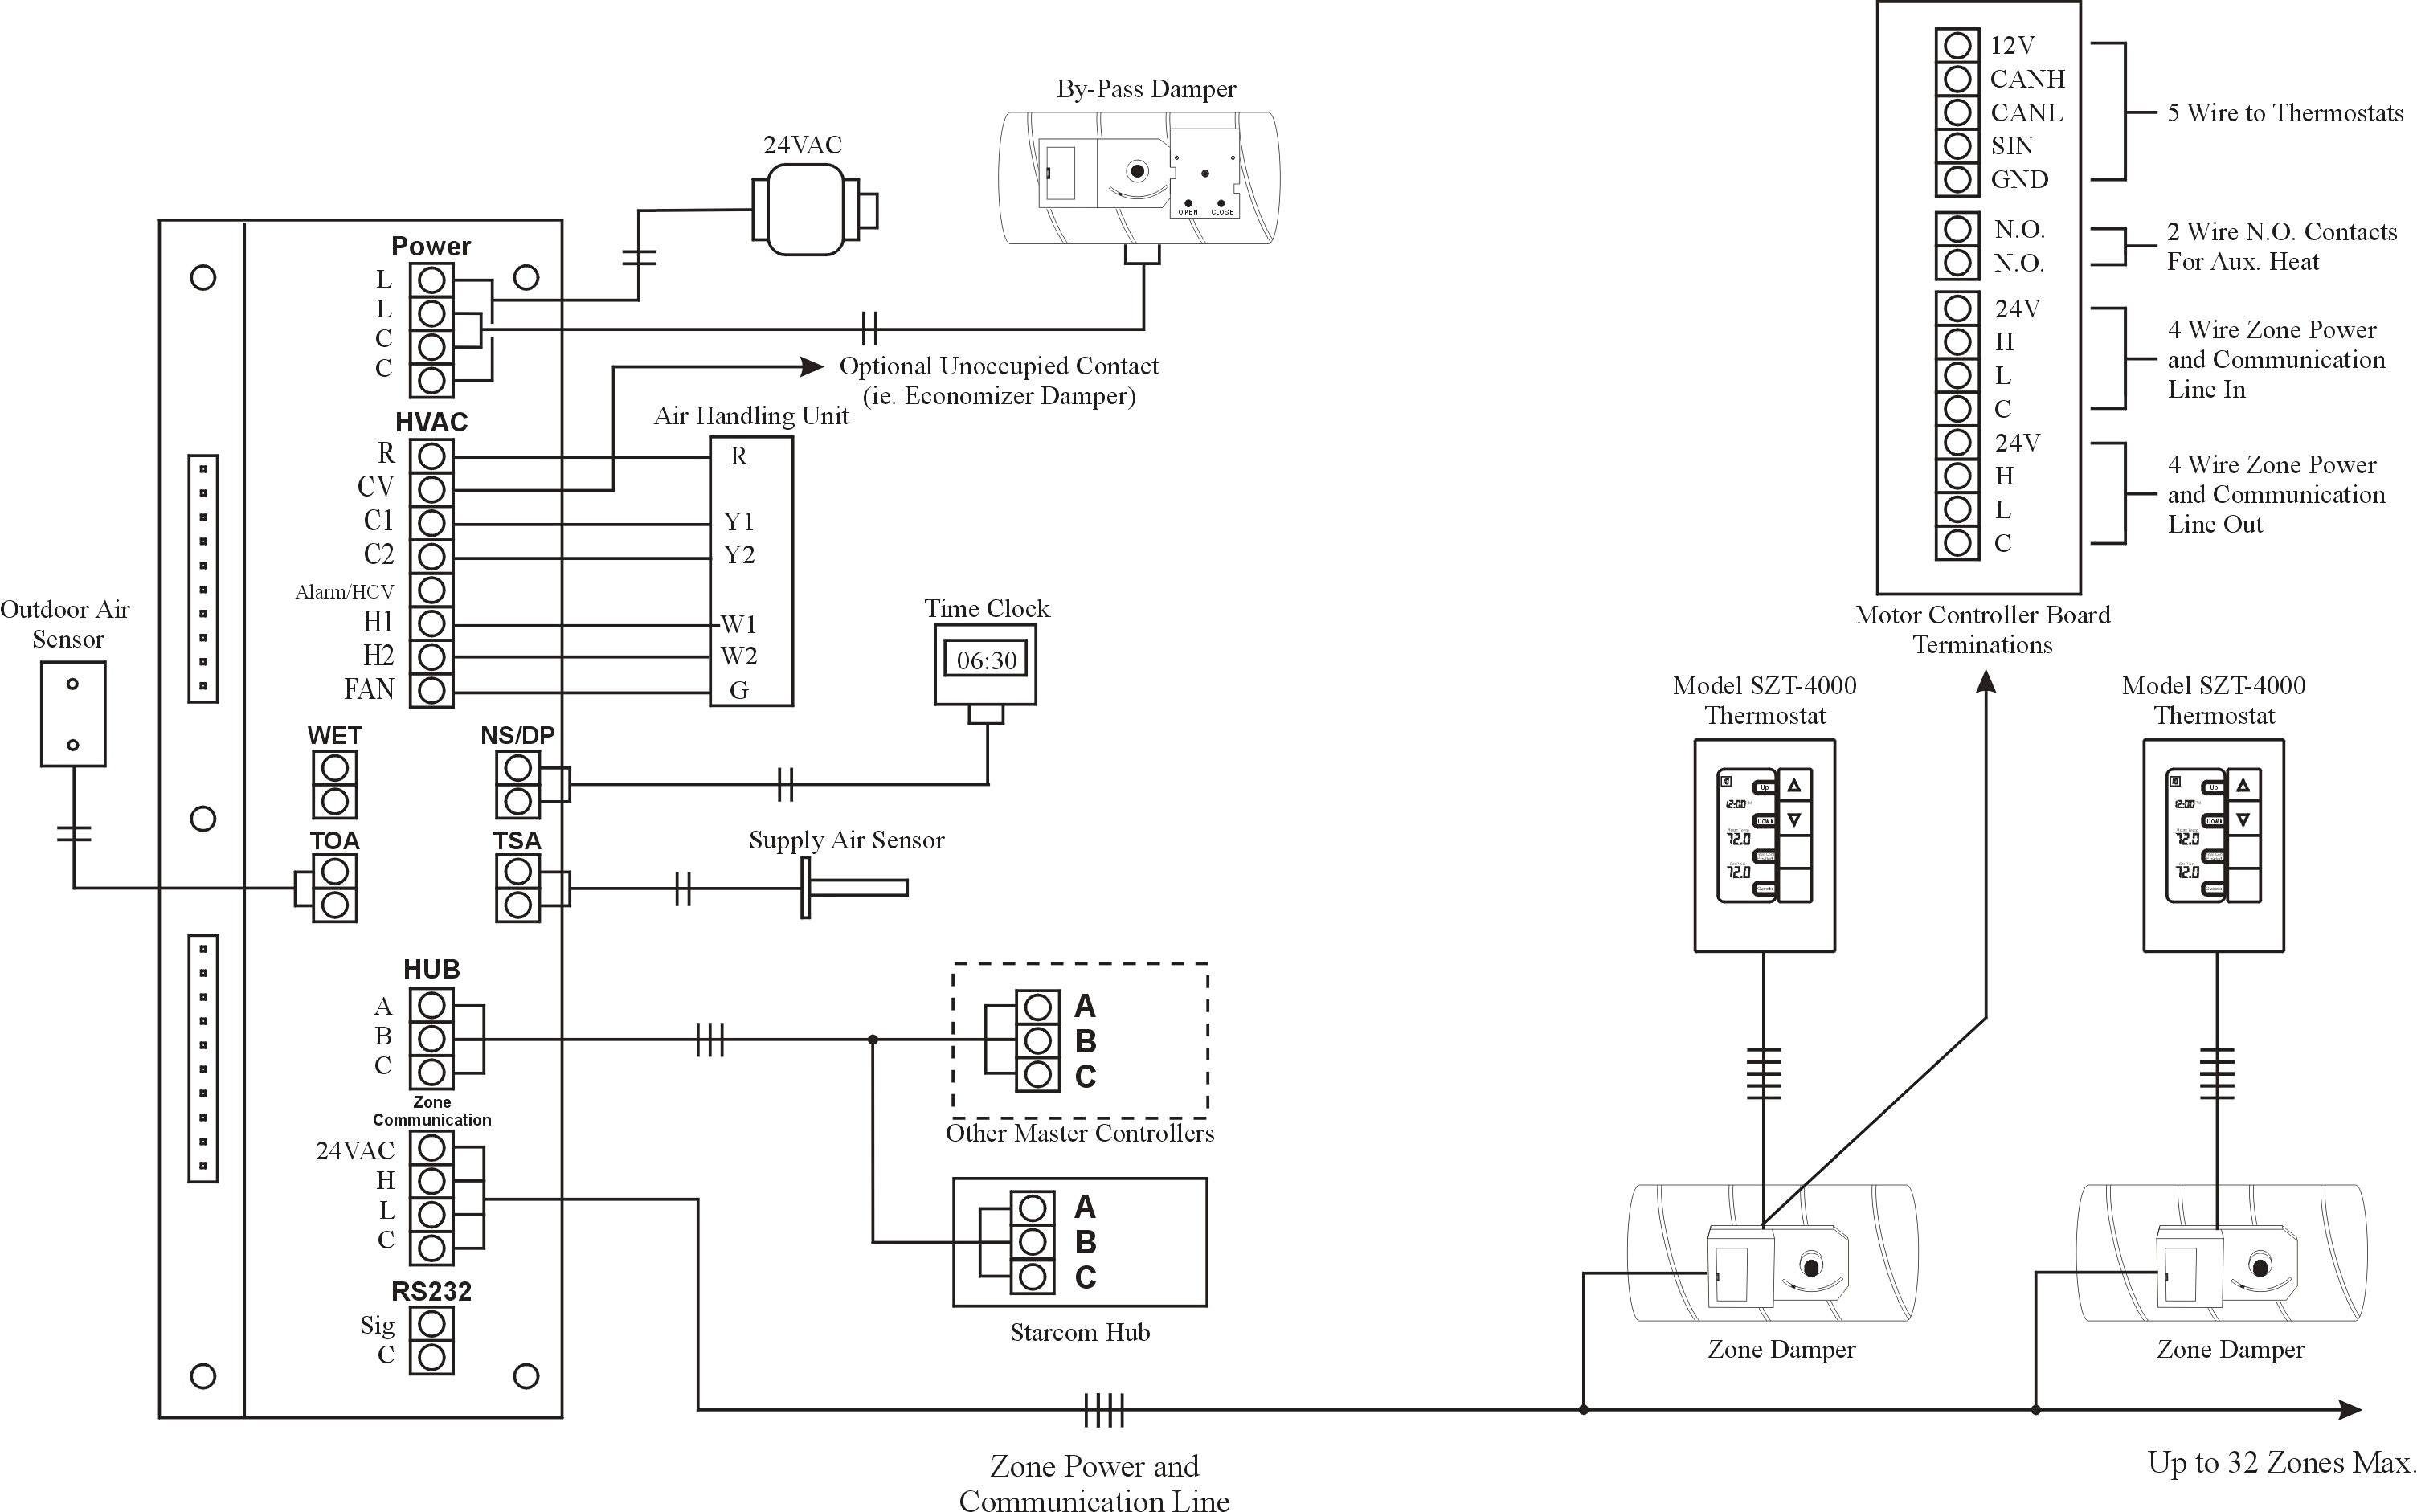 fire alarm elevator recall wiring diagram Collection-Fire Alarm Wiring Diagram Gallery 19-h